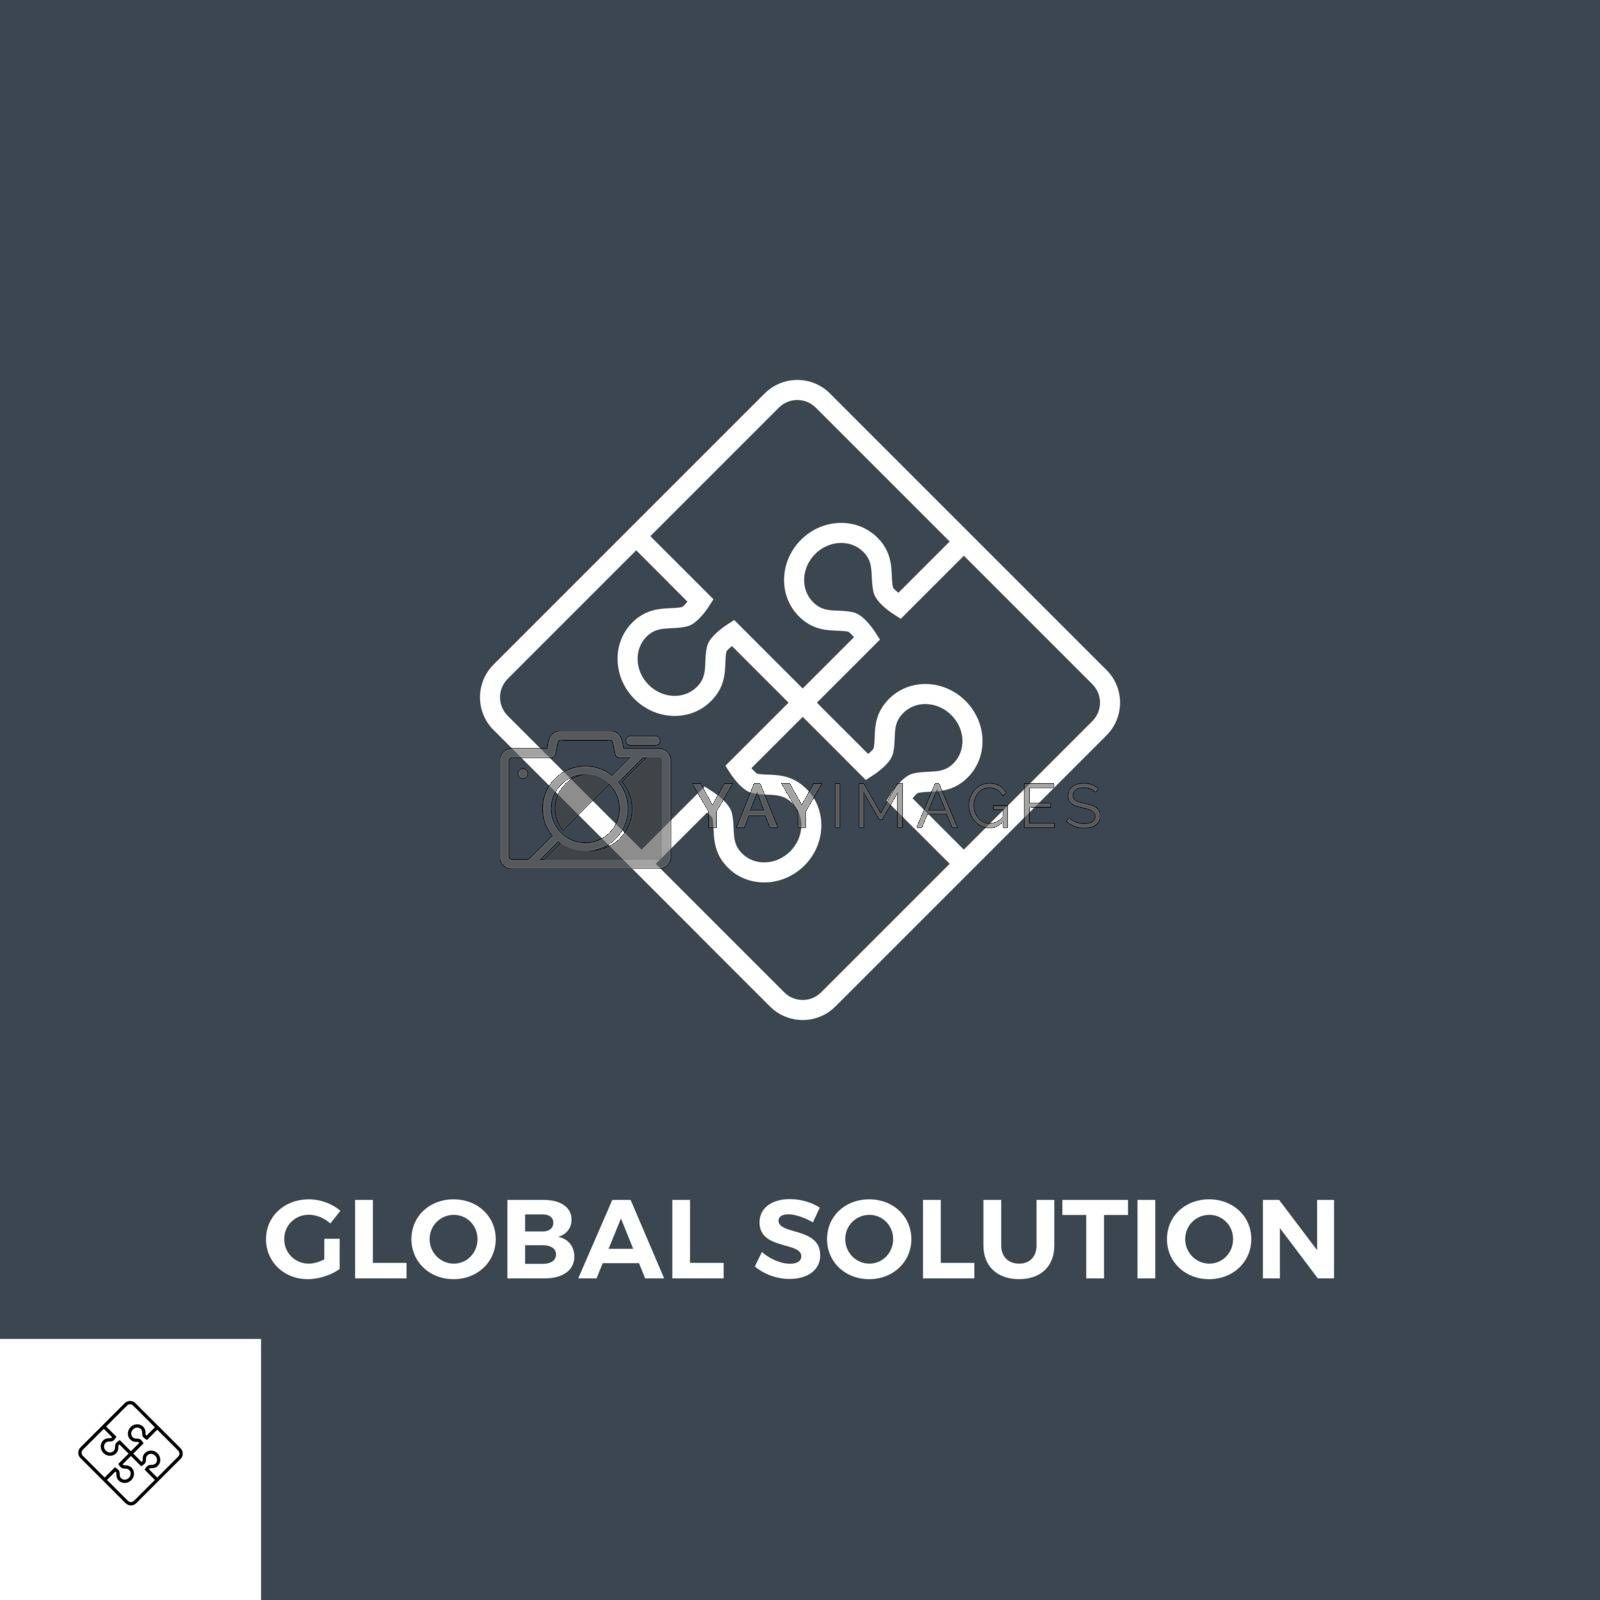 Global Solution Related Vector Thin Line Icon. Isolated on Black Background. Vector Illustration.